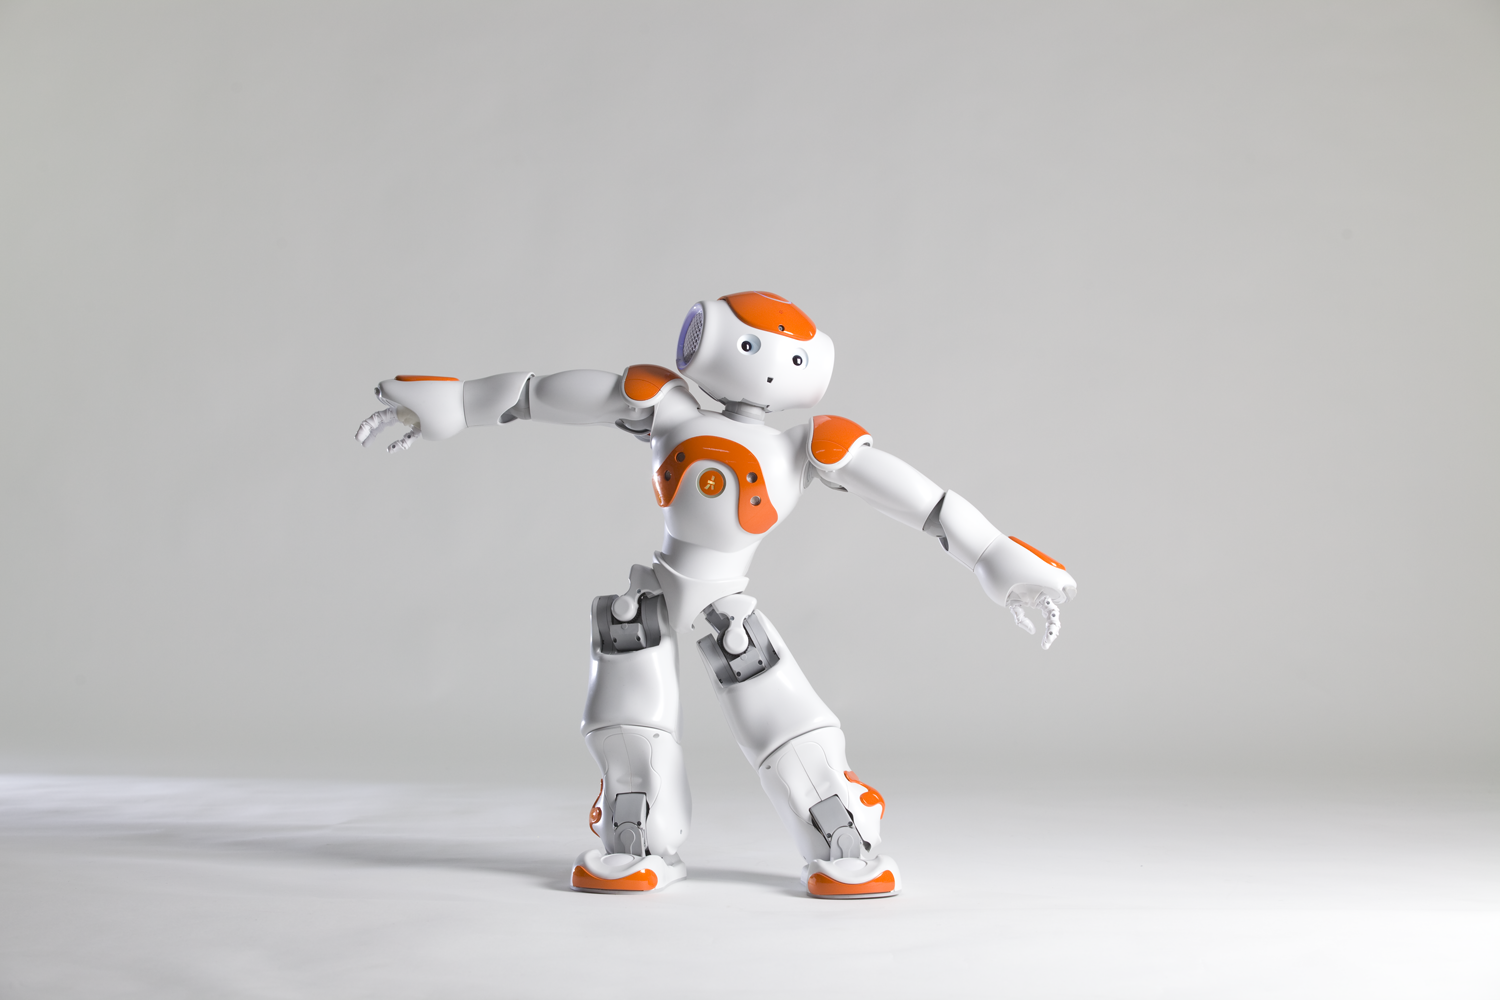 NAO Robot Tutorials in SolidWorks